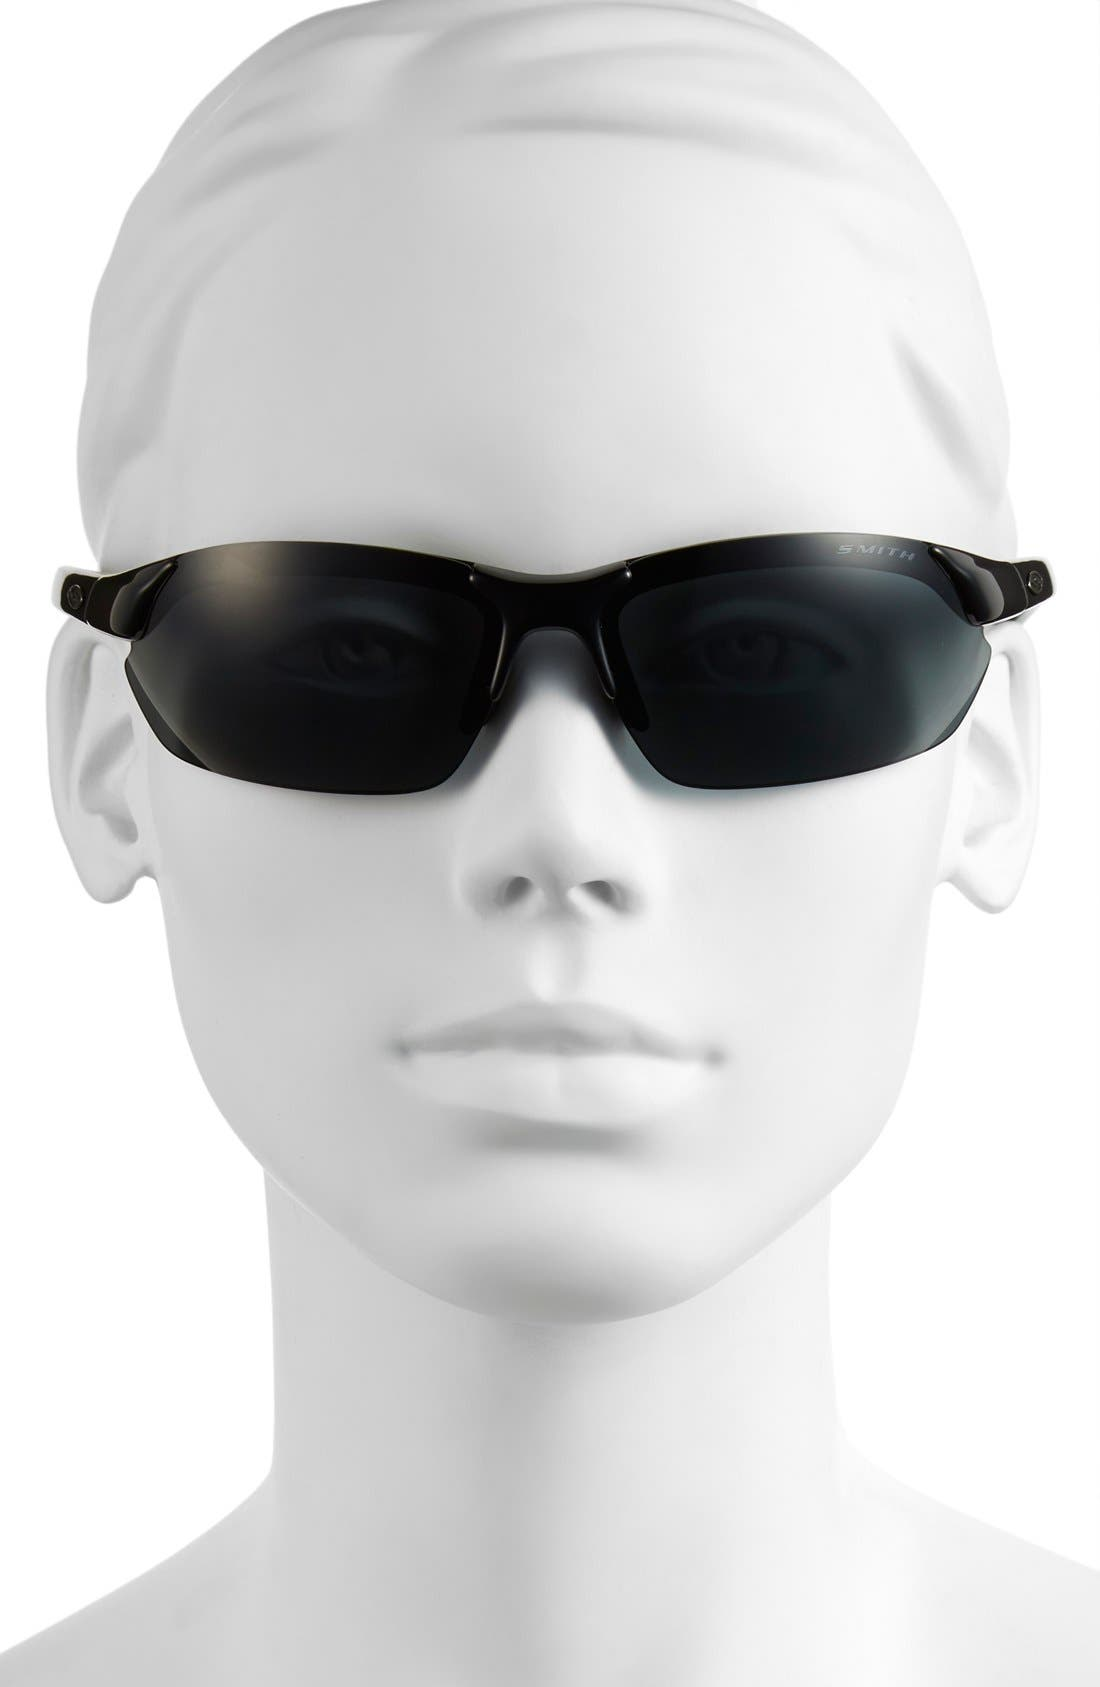 'Parallel Max' 65mm Polarized Sunglasses,                             Alternate thumbnail 2, color,                             Black/ Polar Grey/ Clear